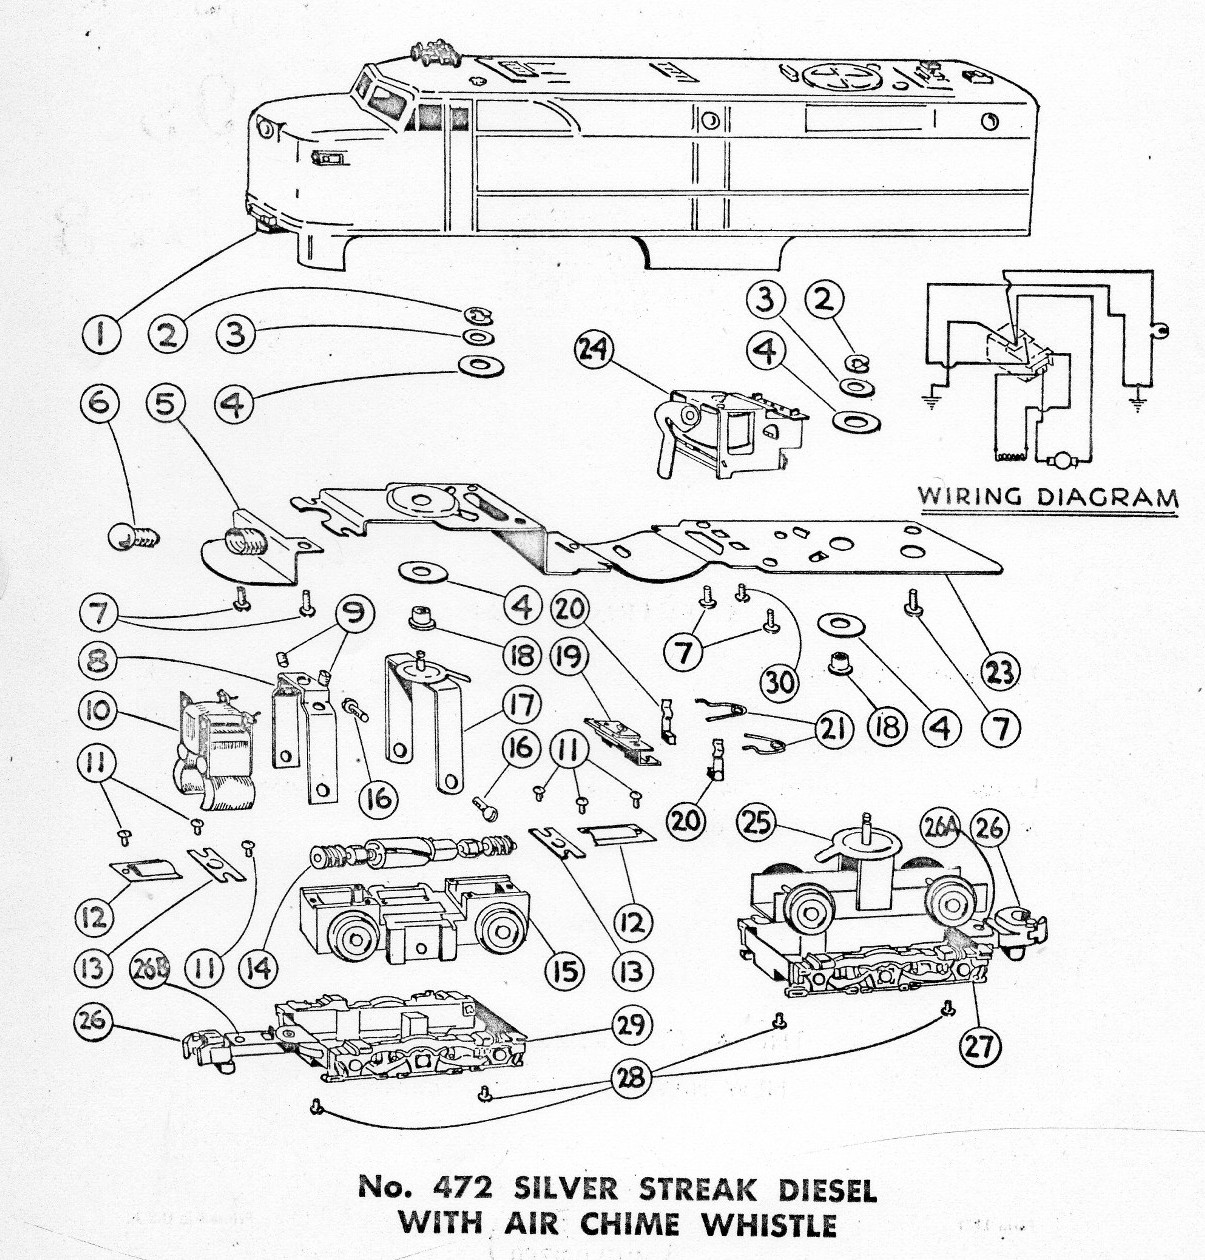 American Flyer Train Engine Wiring Diagram American Flyer